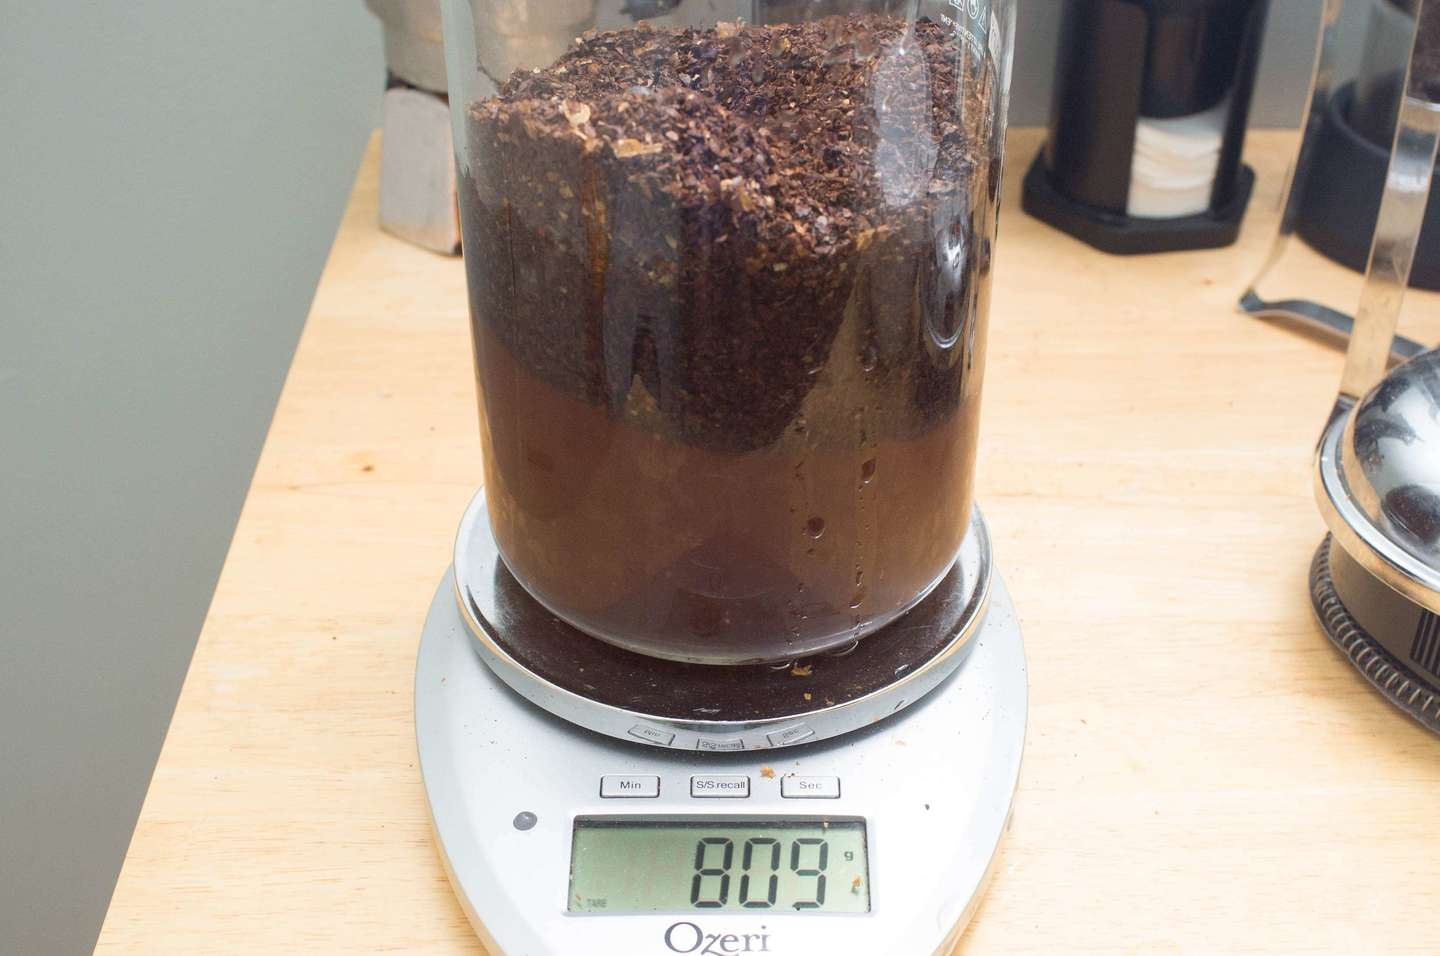 French press coffee maker filled with coffee and water on a scale